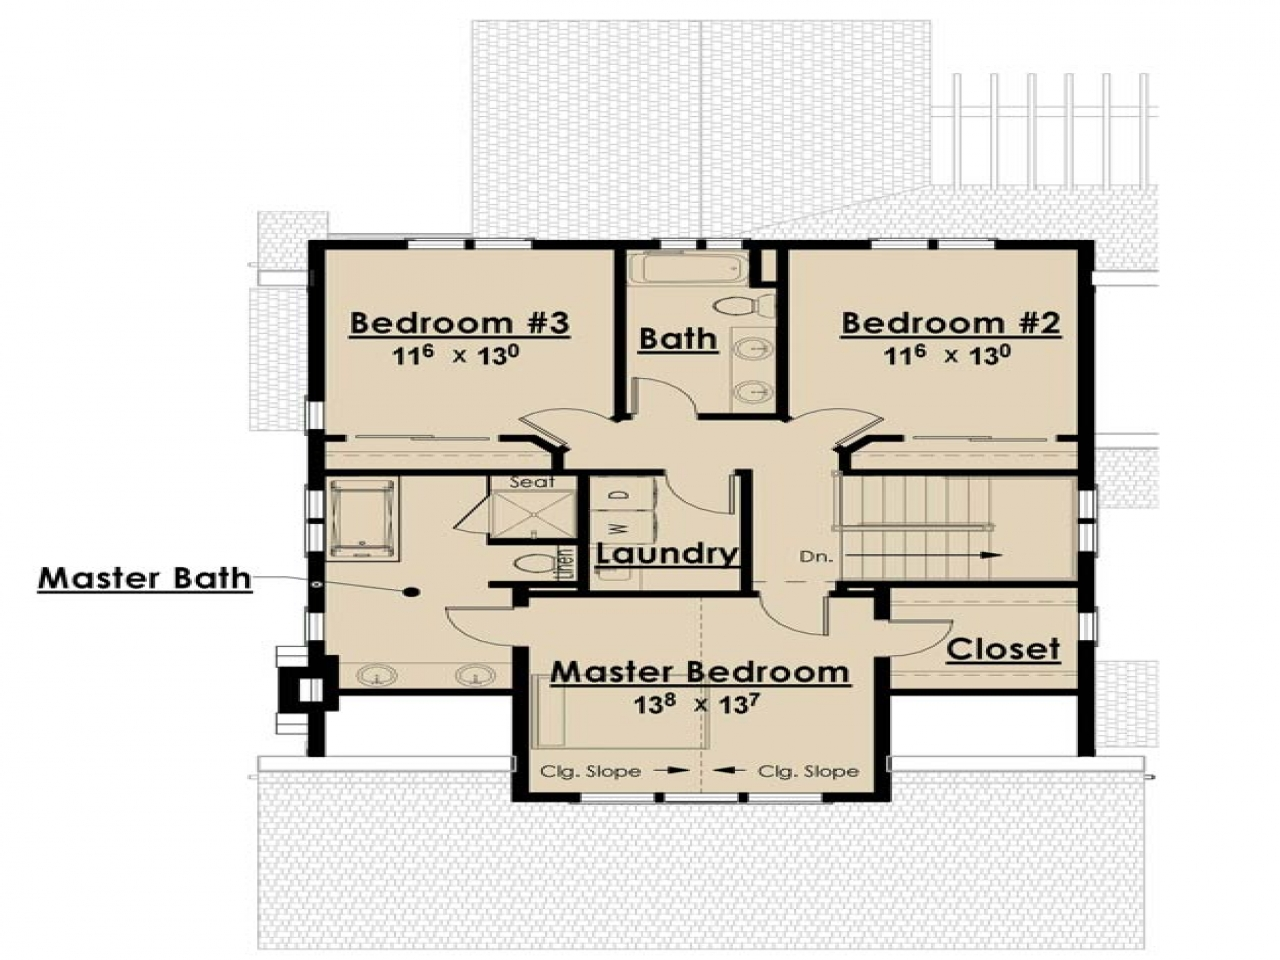 Craftsman bungalow house plans bungalow floor plans for Bungalow house plans with basement and garage